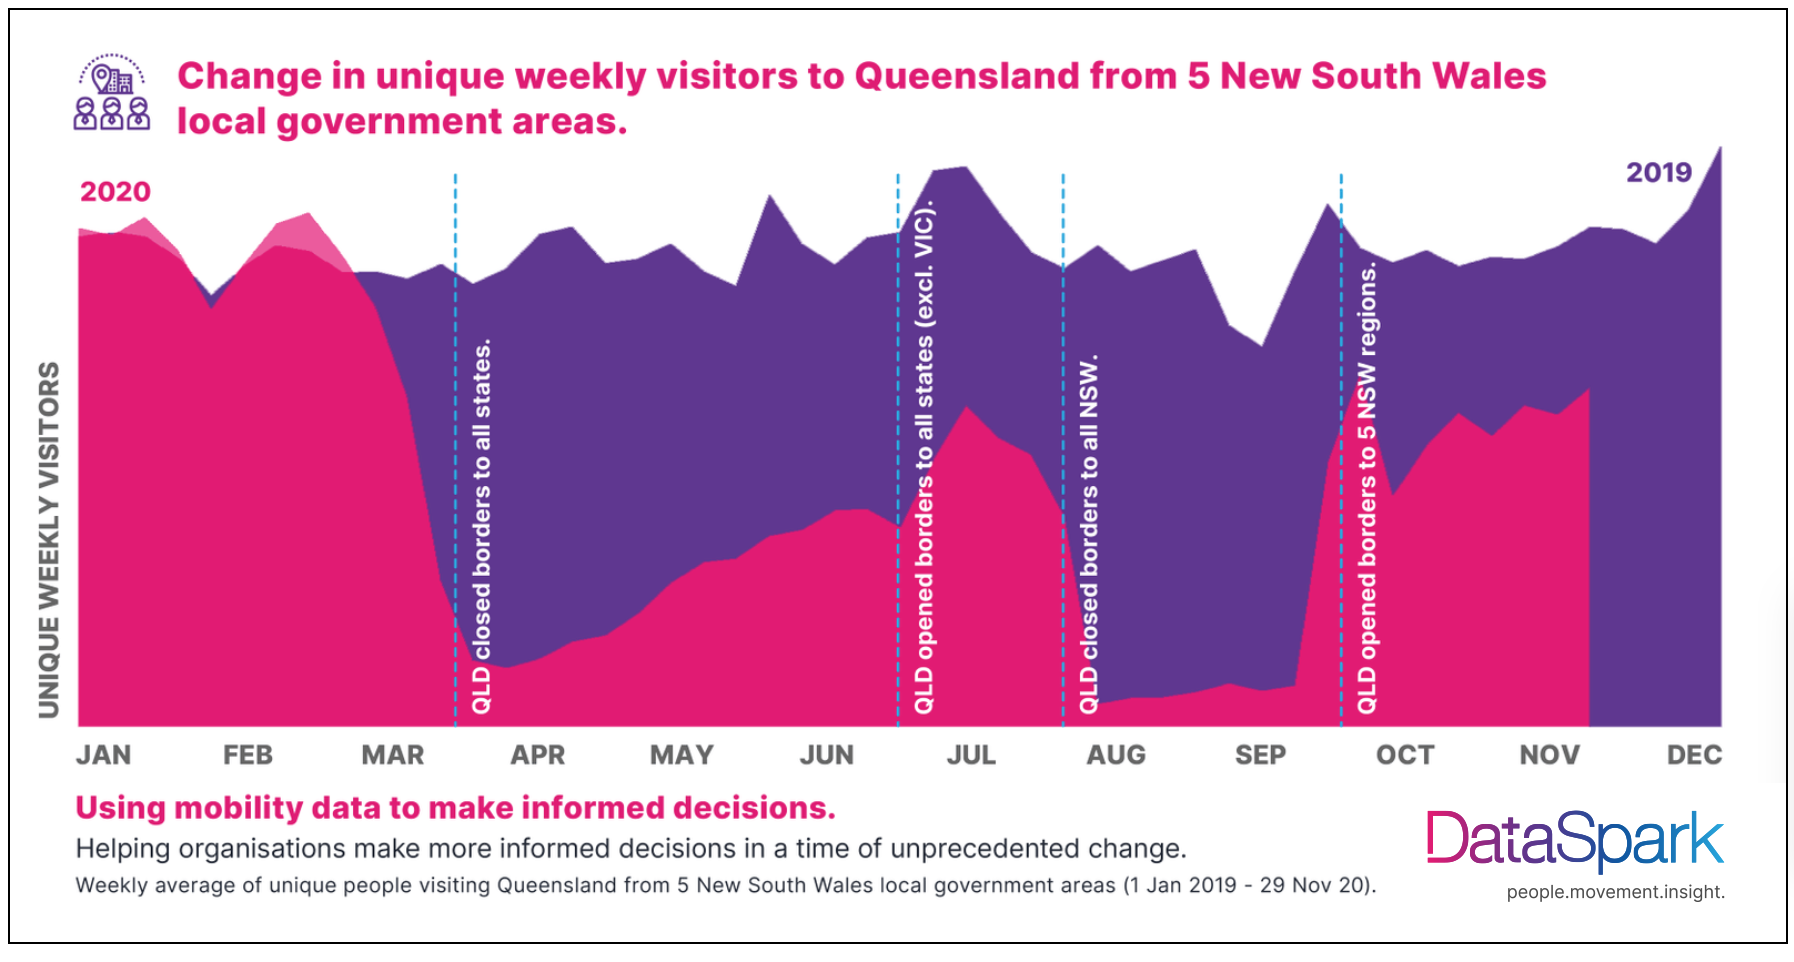 unique weekly visitors over years